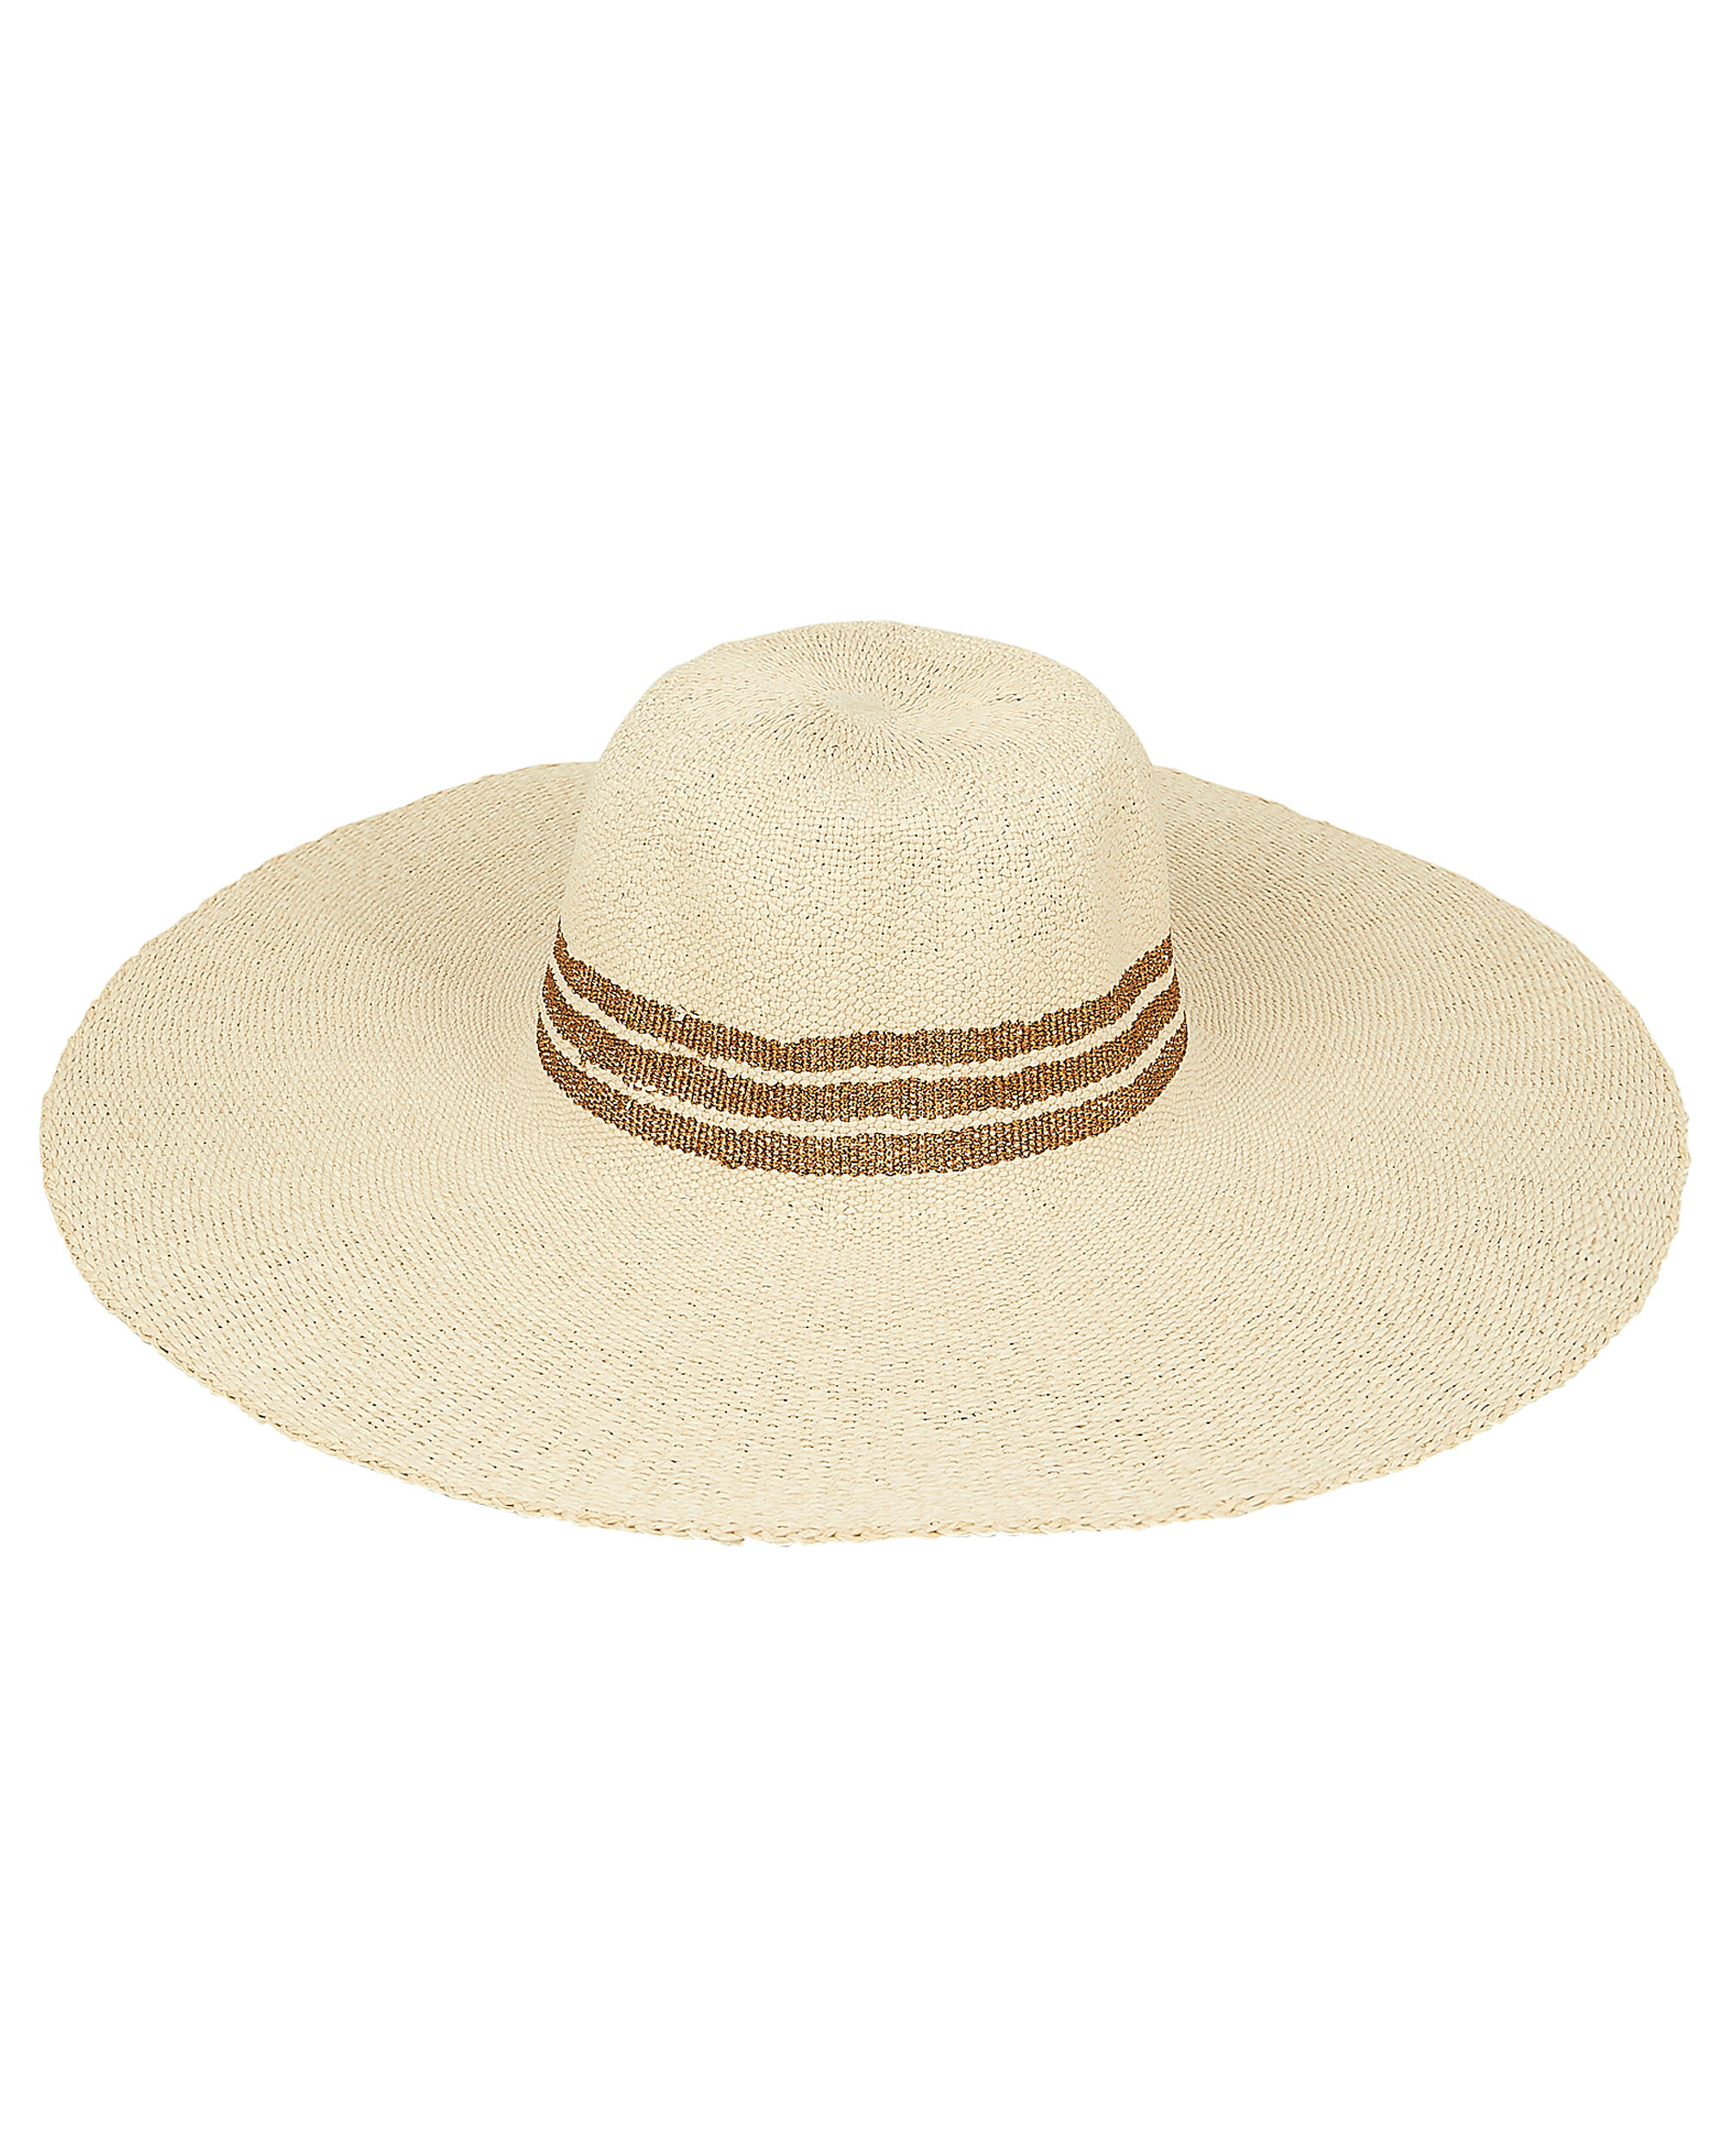 Metallic Inset Stripe Sunhat, TAN, hi-res